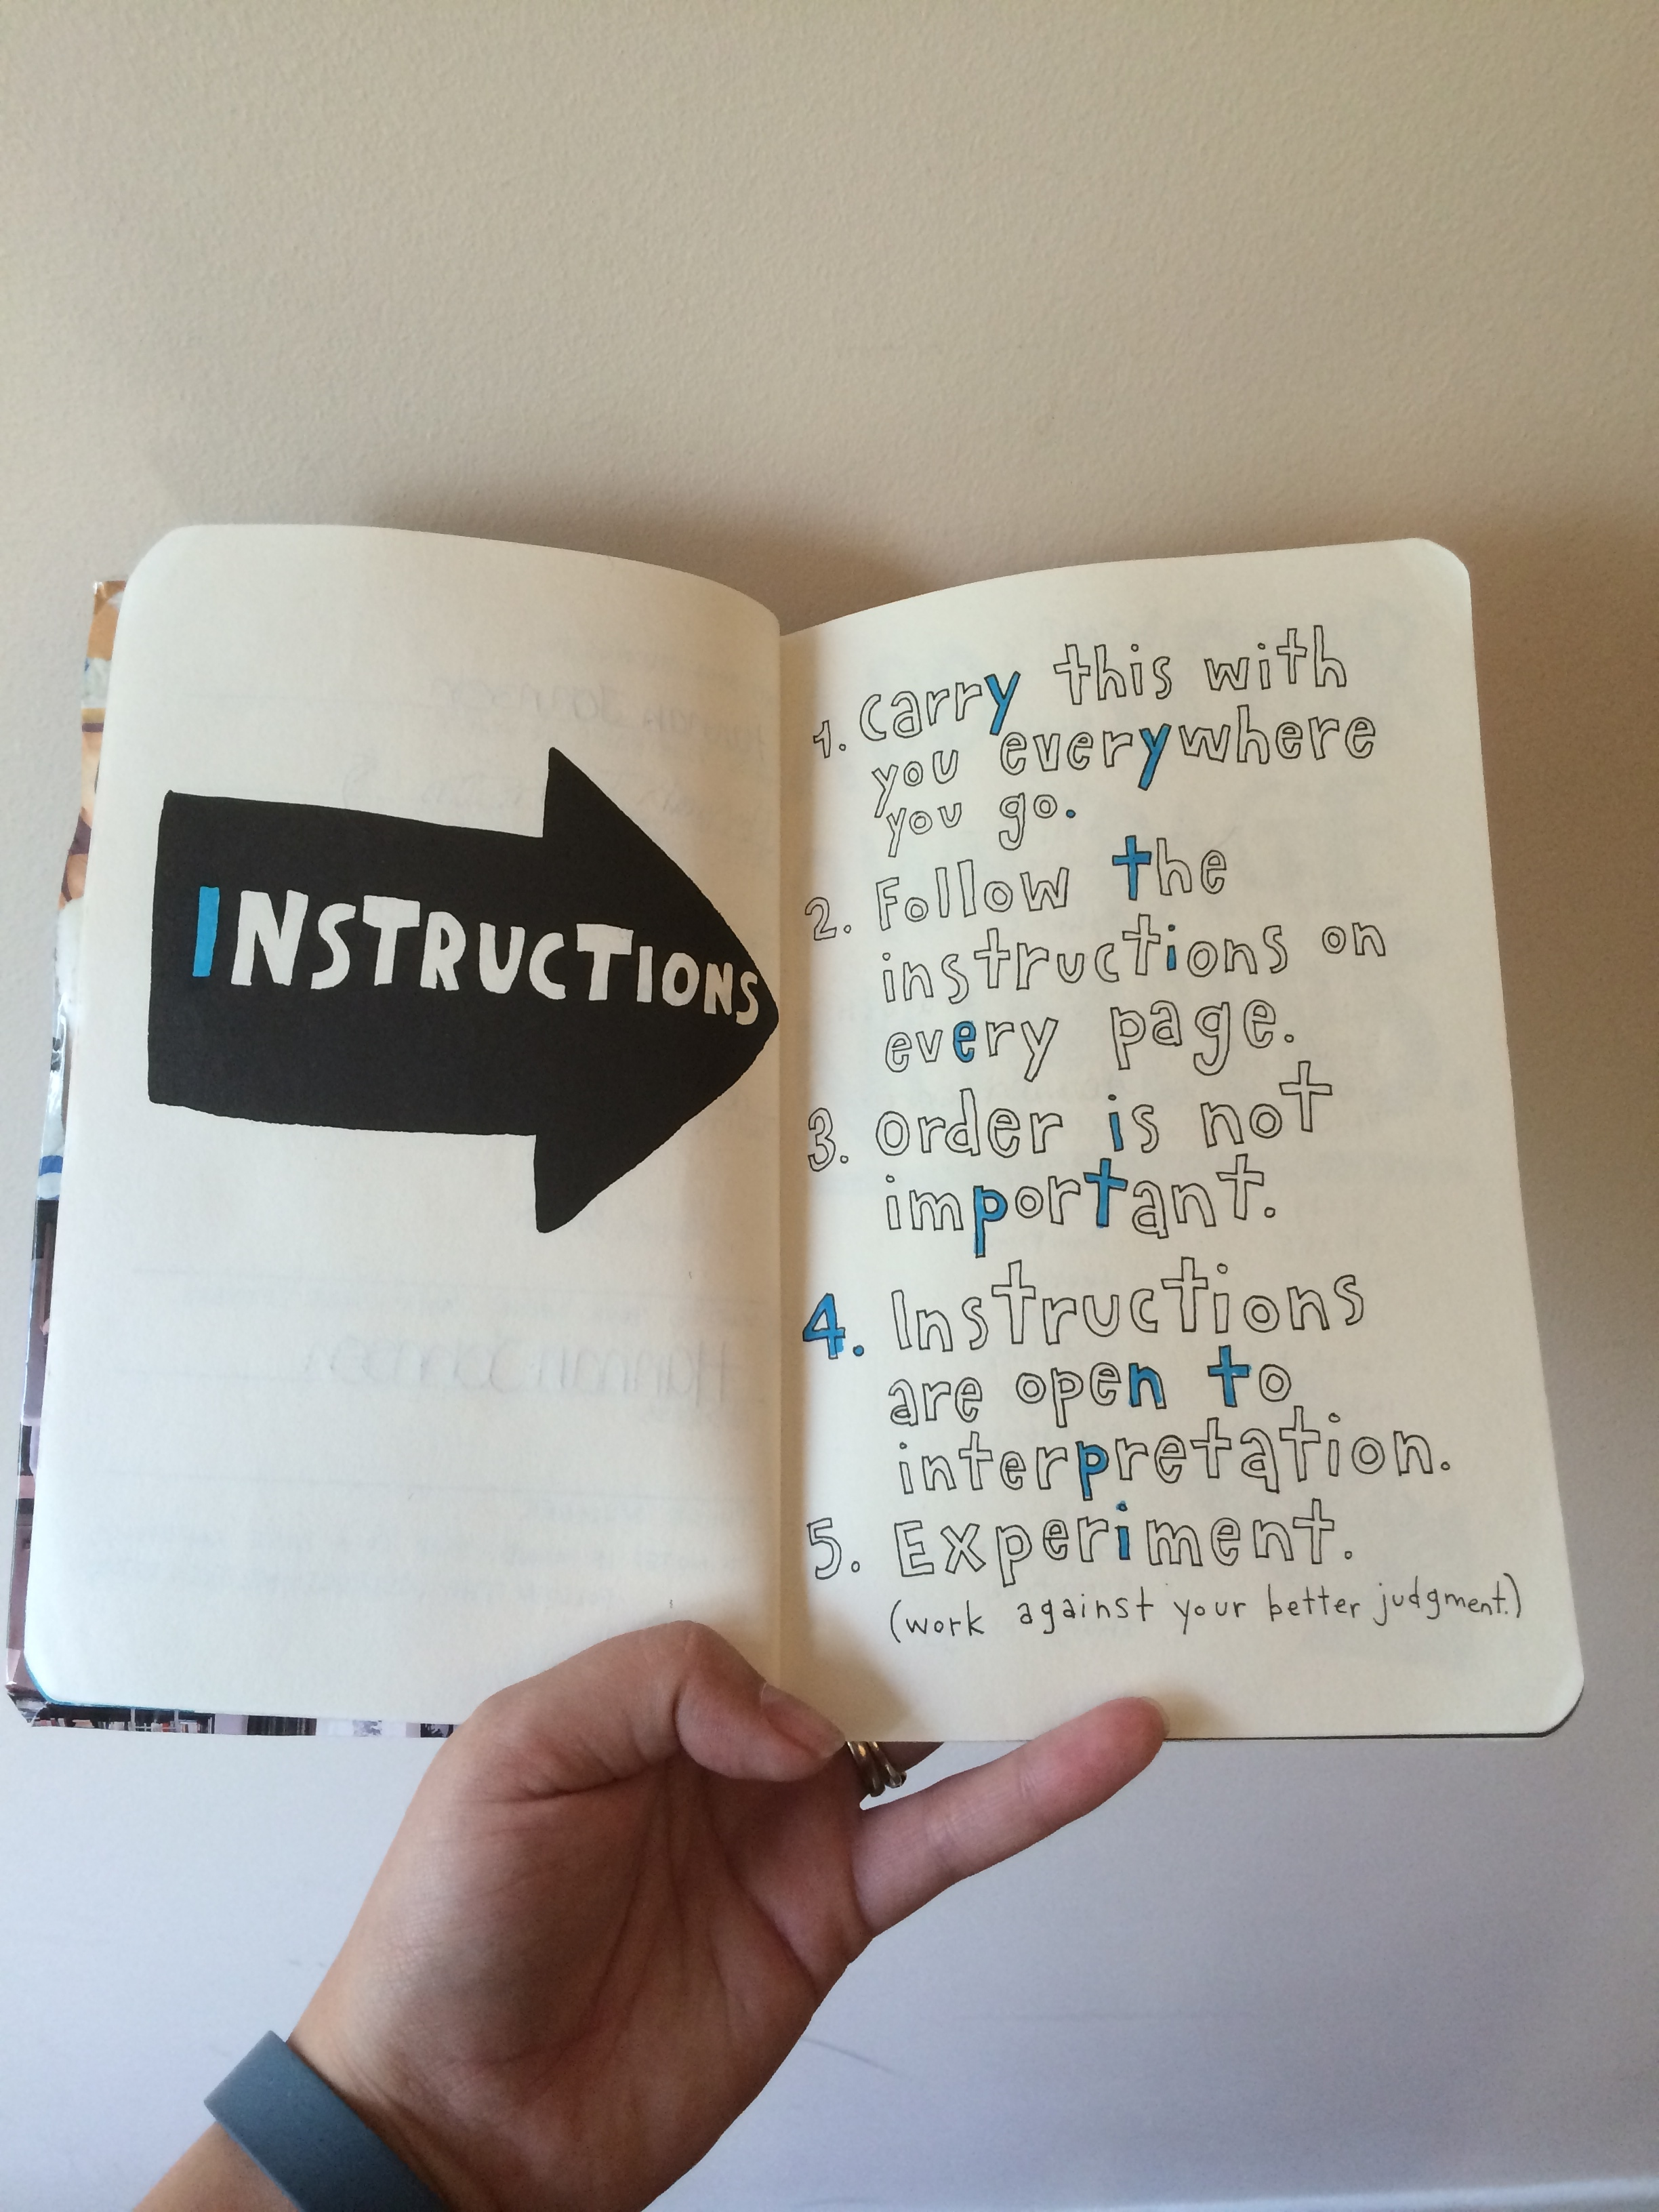 Instructions - WTJ - In Progress